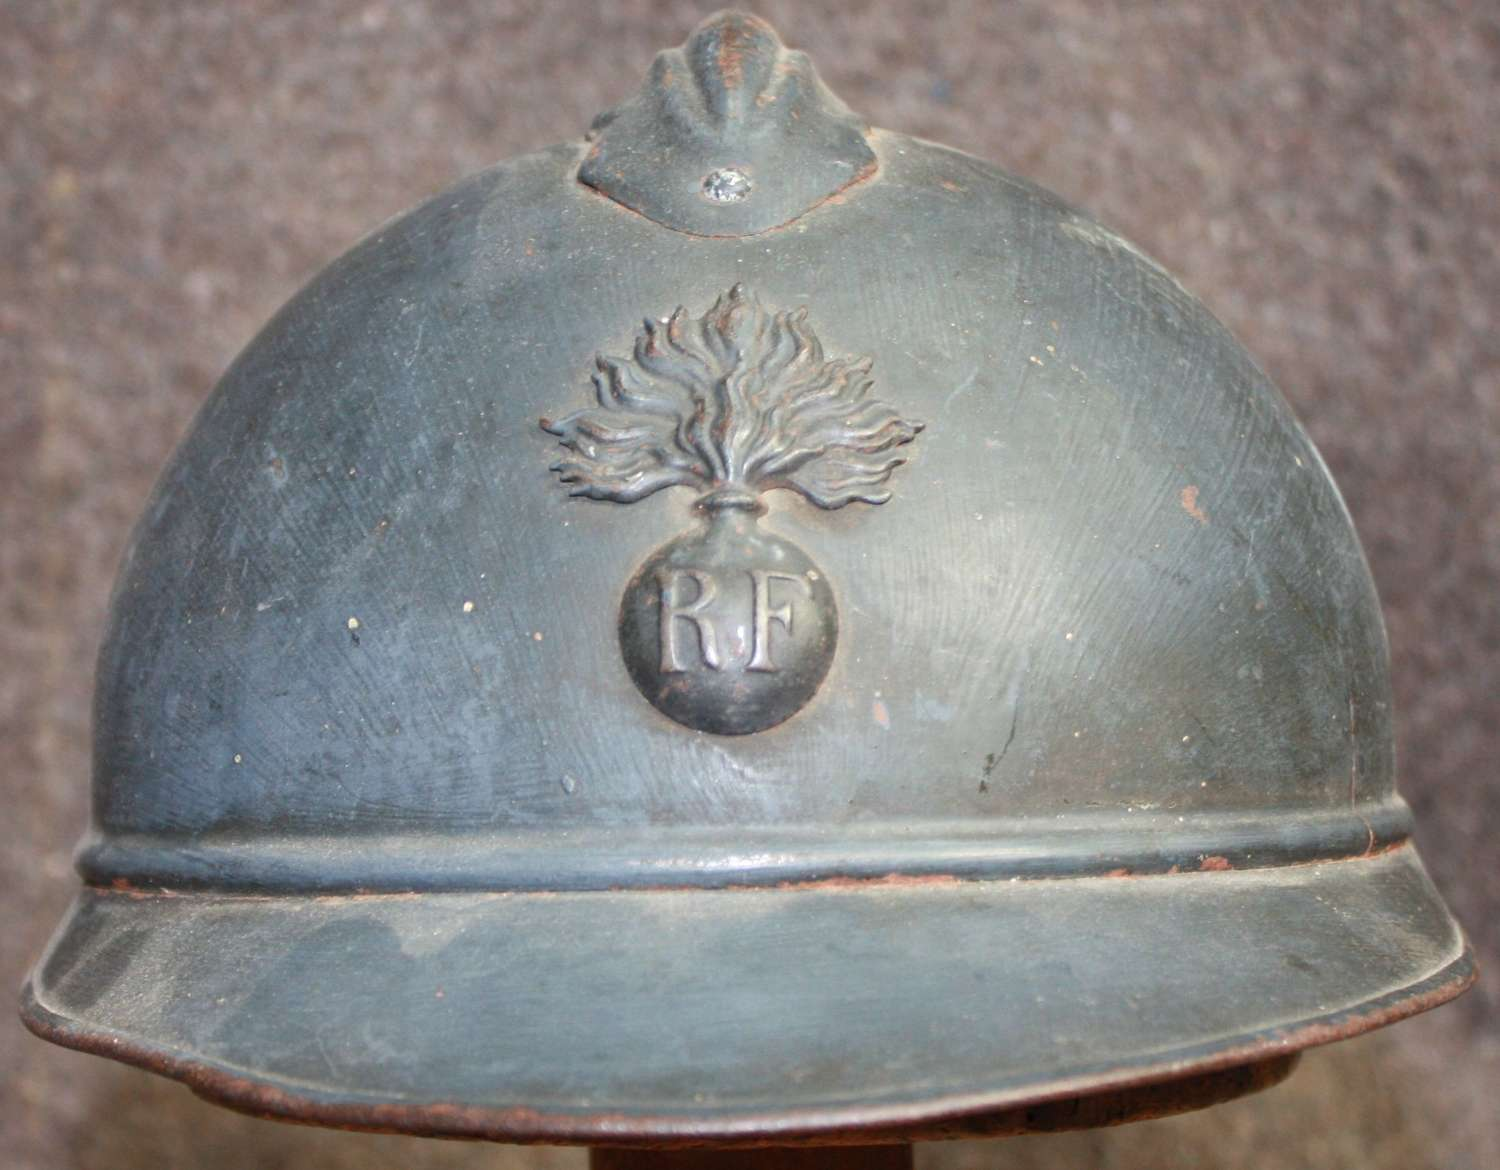 A GOOD USED LATE WWI FRENCH ARMY ADRIAN HELMET